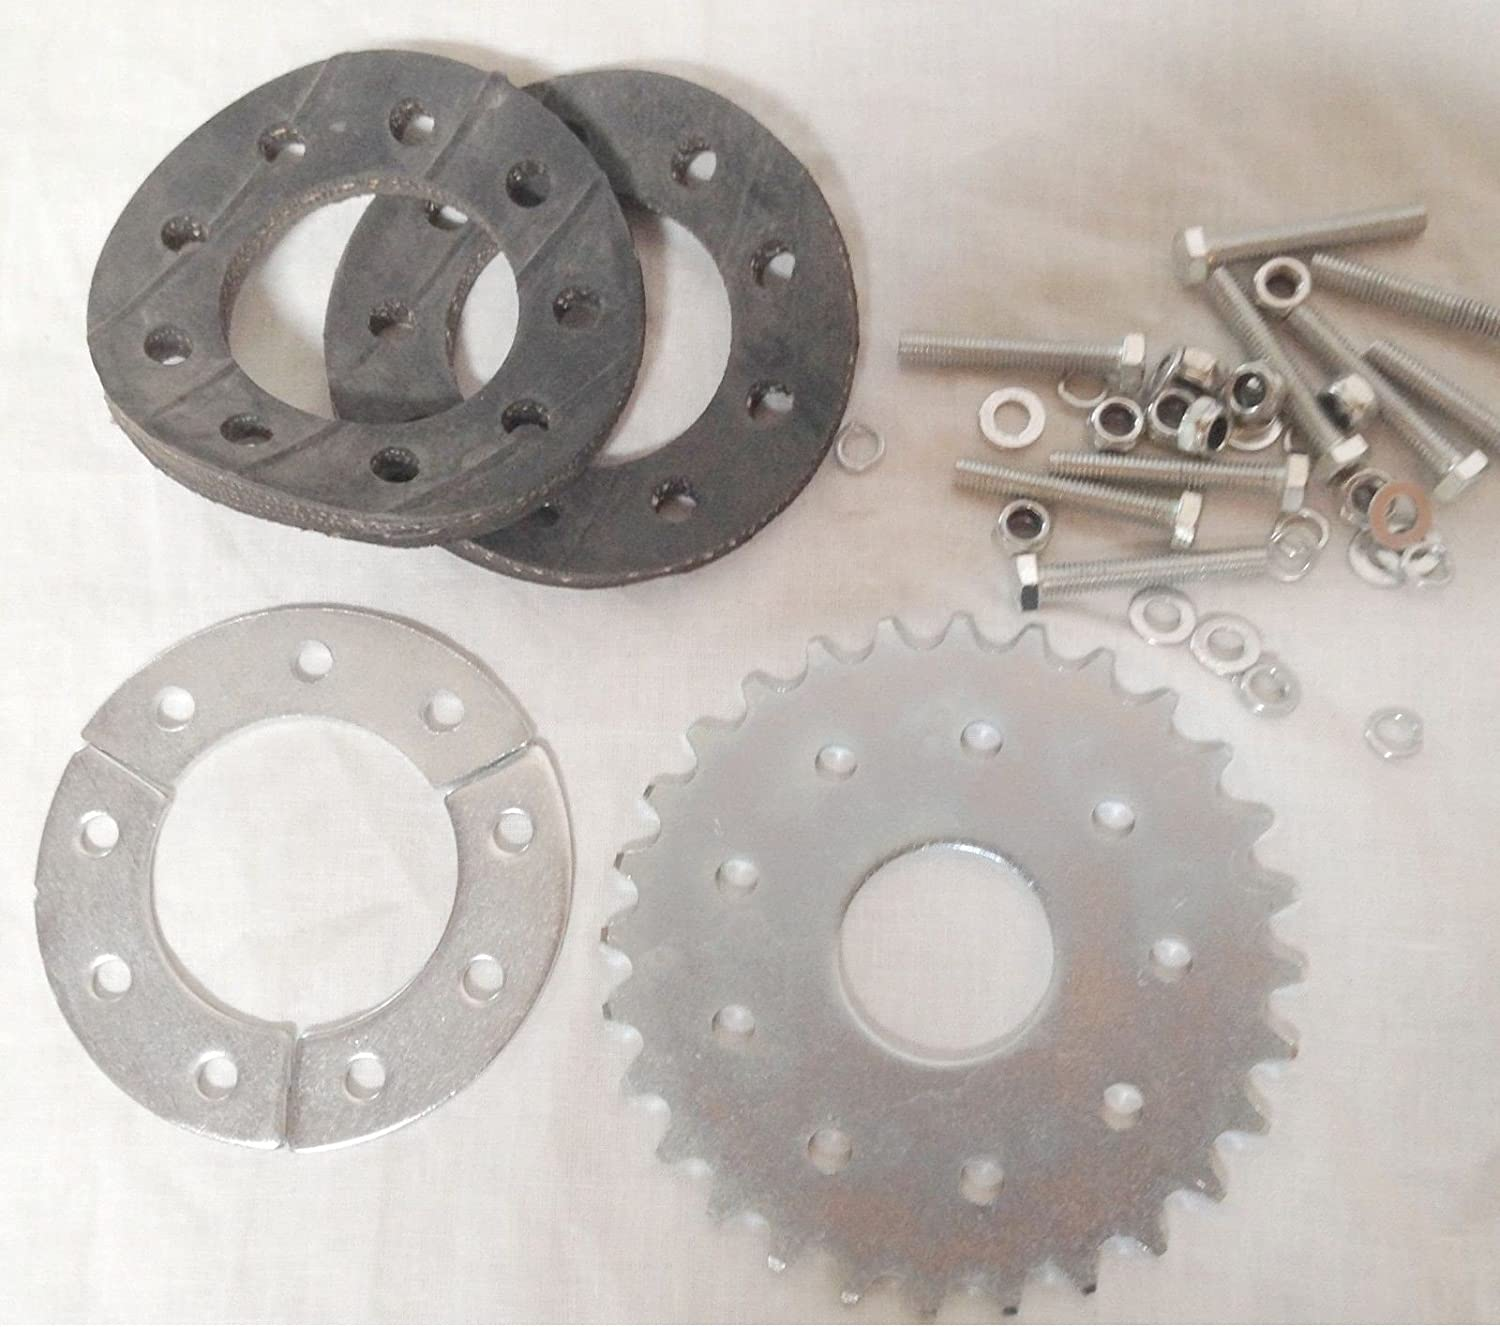 28 teeth FLAT sprocket only no mount 66//80cc Motor bicycle GAS ENGINE parts